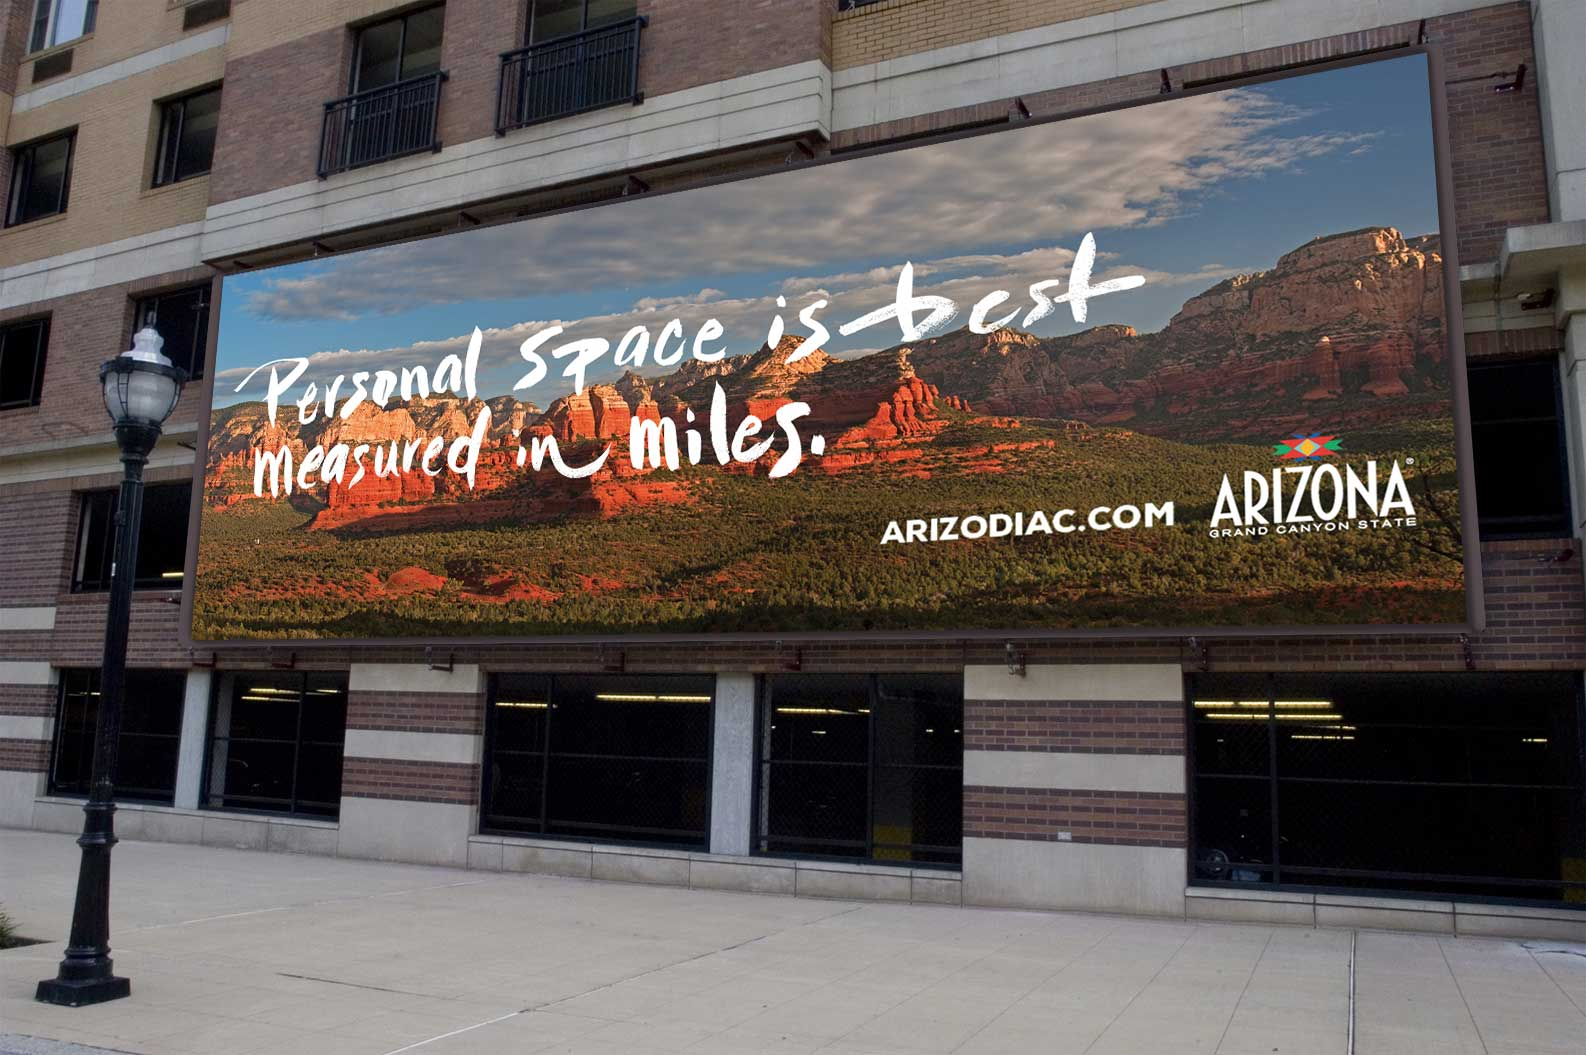 Arizona Office of Tourism - Strategy, Campaign & Outreach  View Campaigns